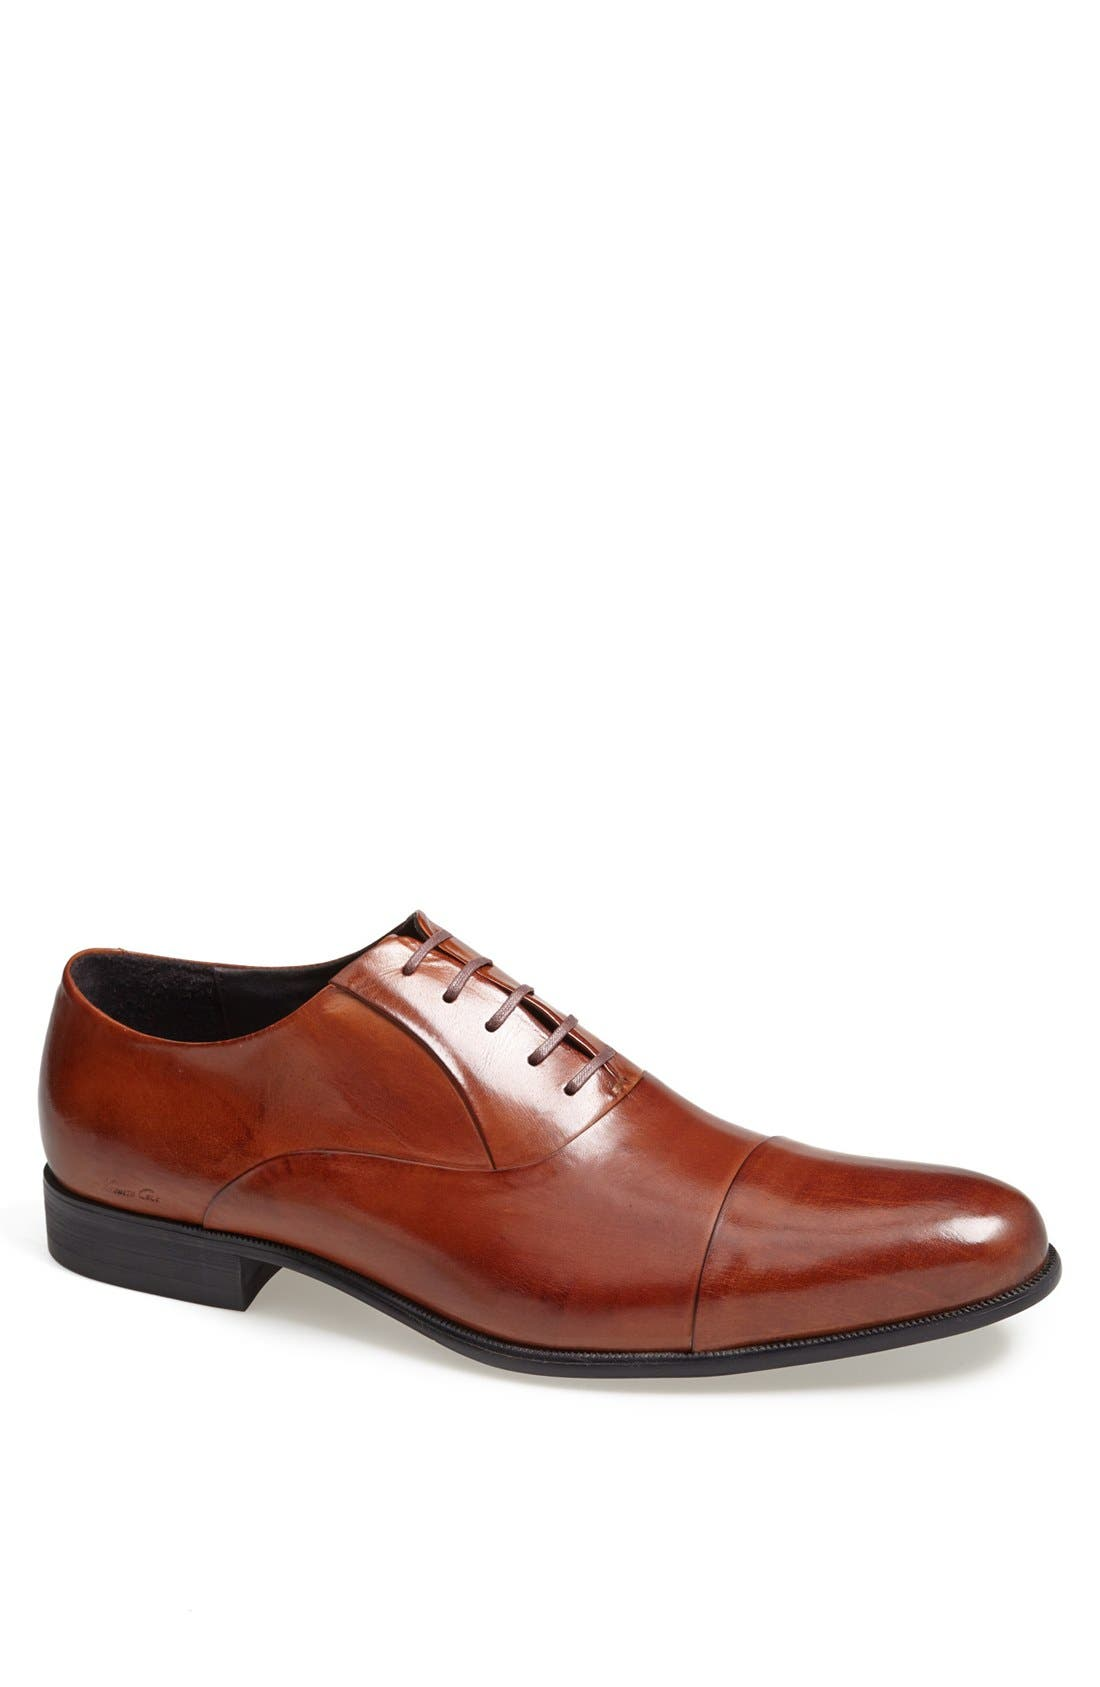 Kenneth Cole New York Men's Kenneth Cole Tully Plain Toe Derby YUThesJw1